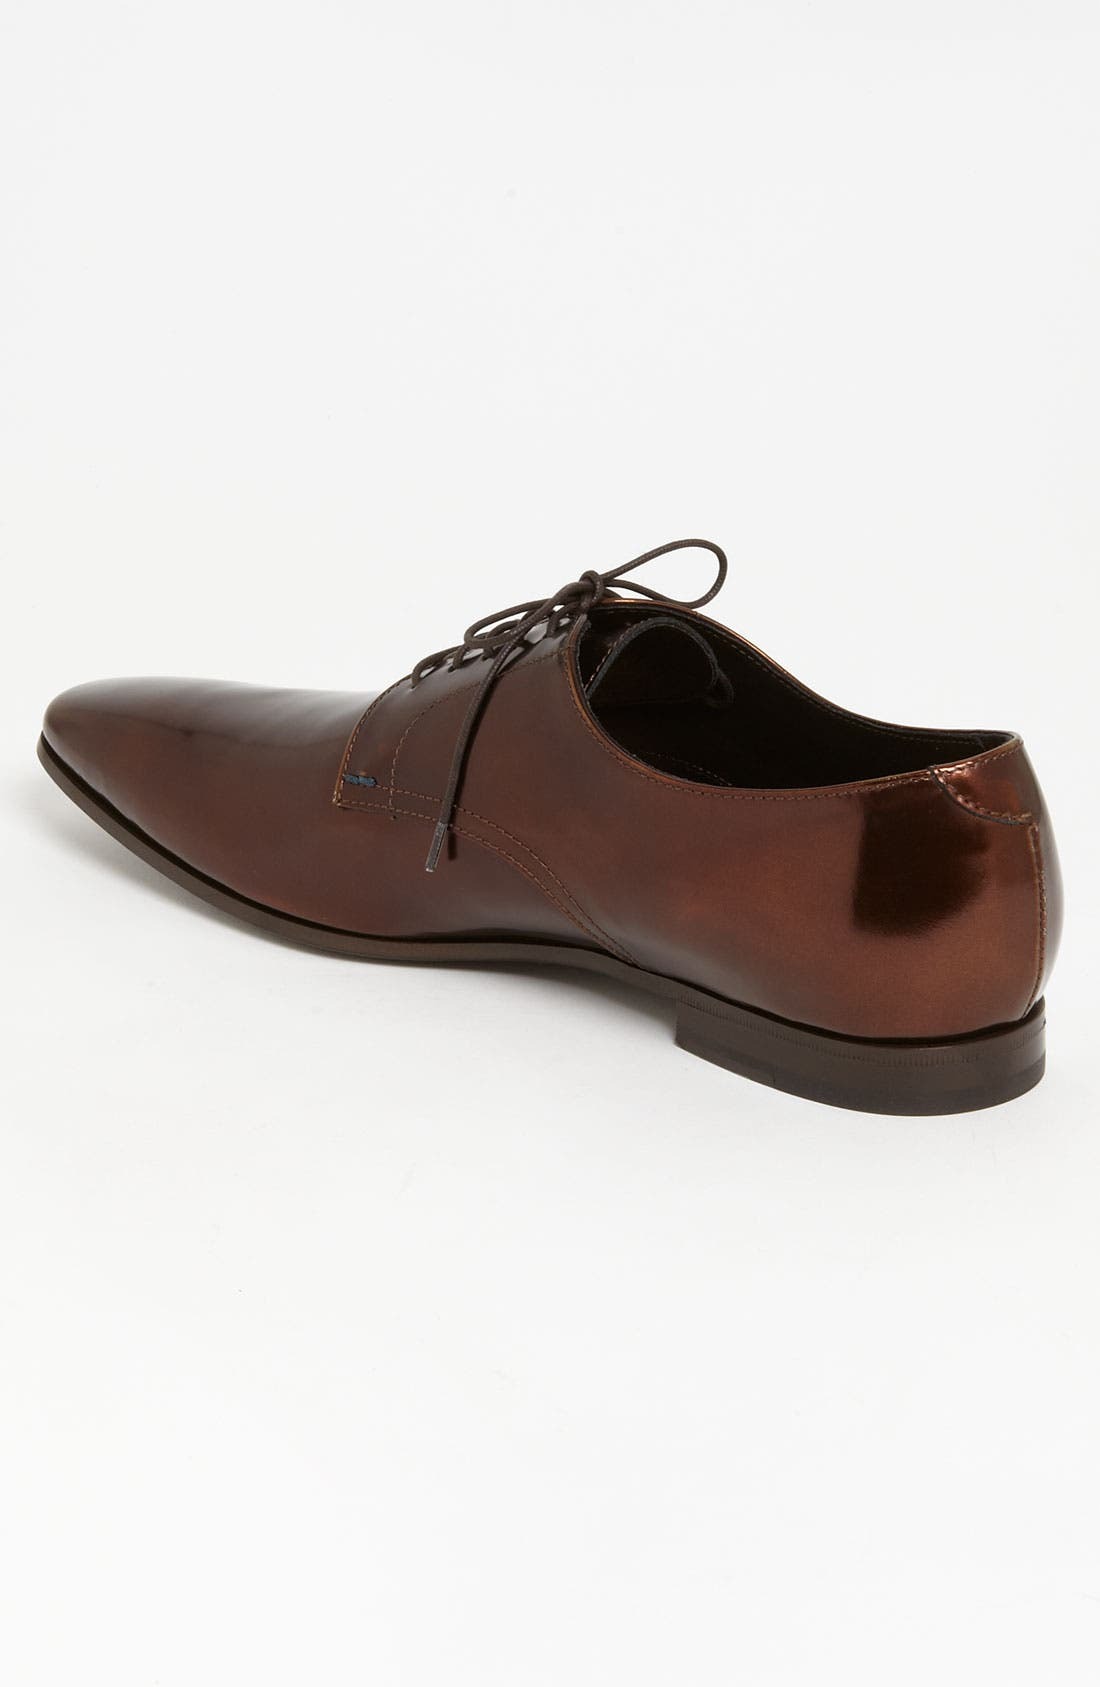 Alternate Image 2  - Paul Smith 'Taylors' Plain Toe Derby